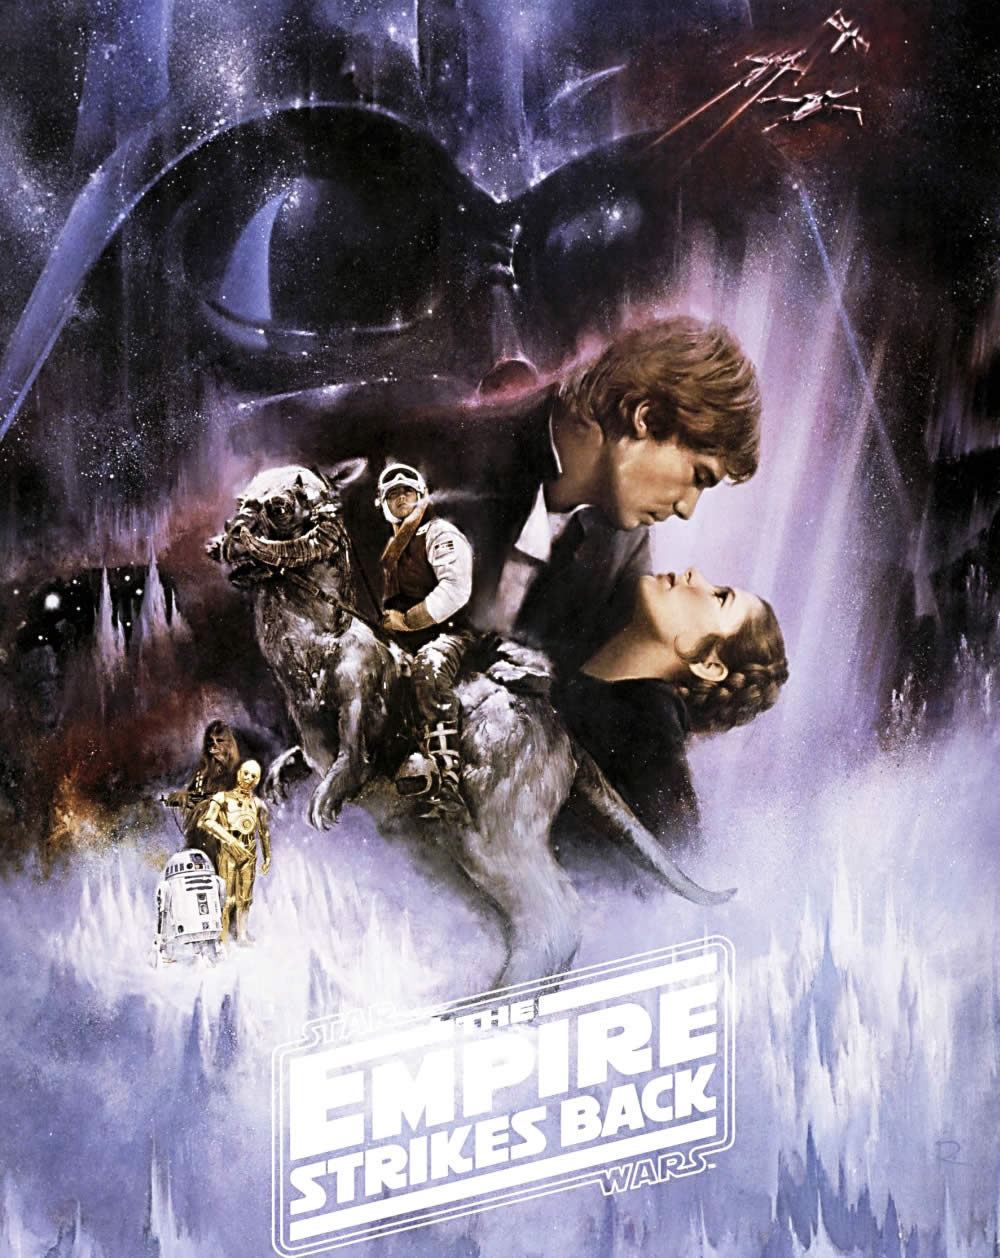 """Star Wars: Episode V - The Empire Strikes Back"" (1980)."